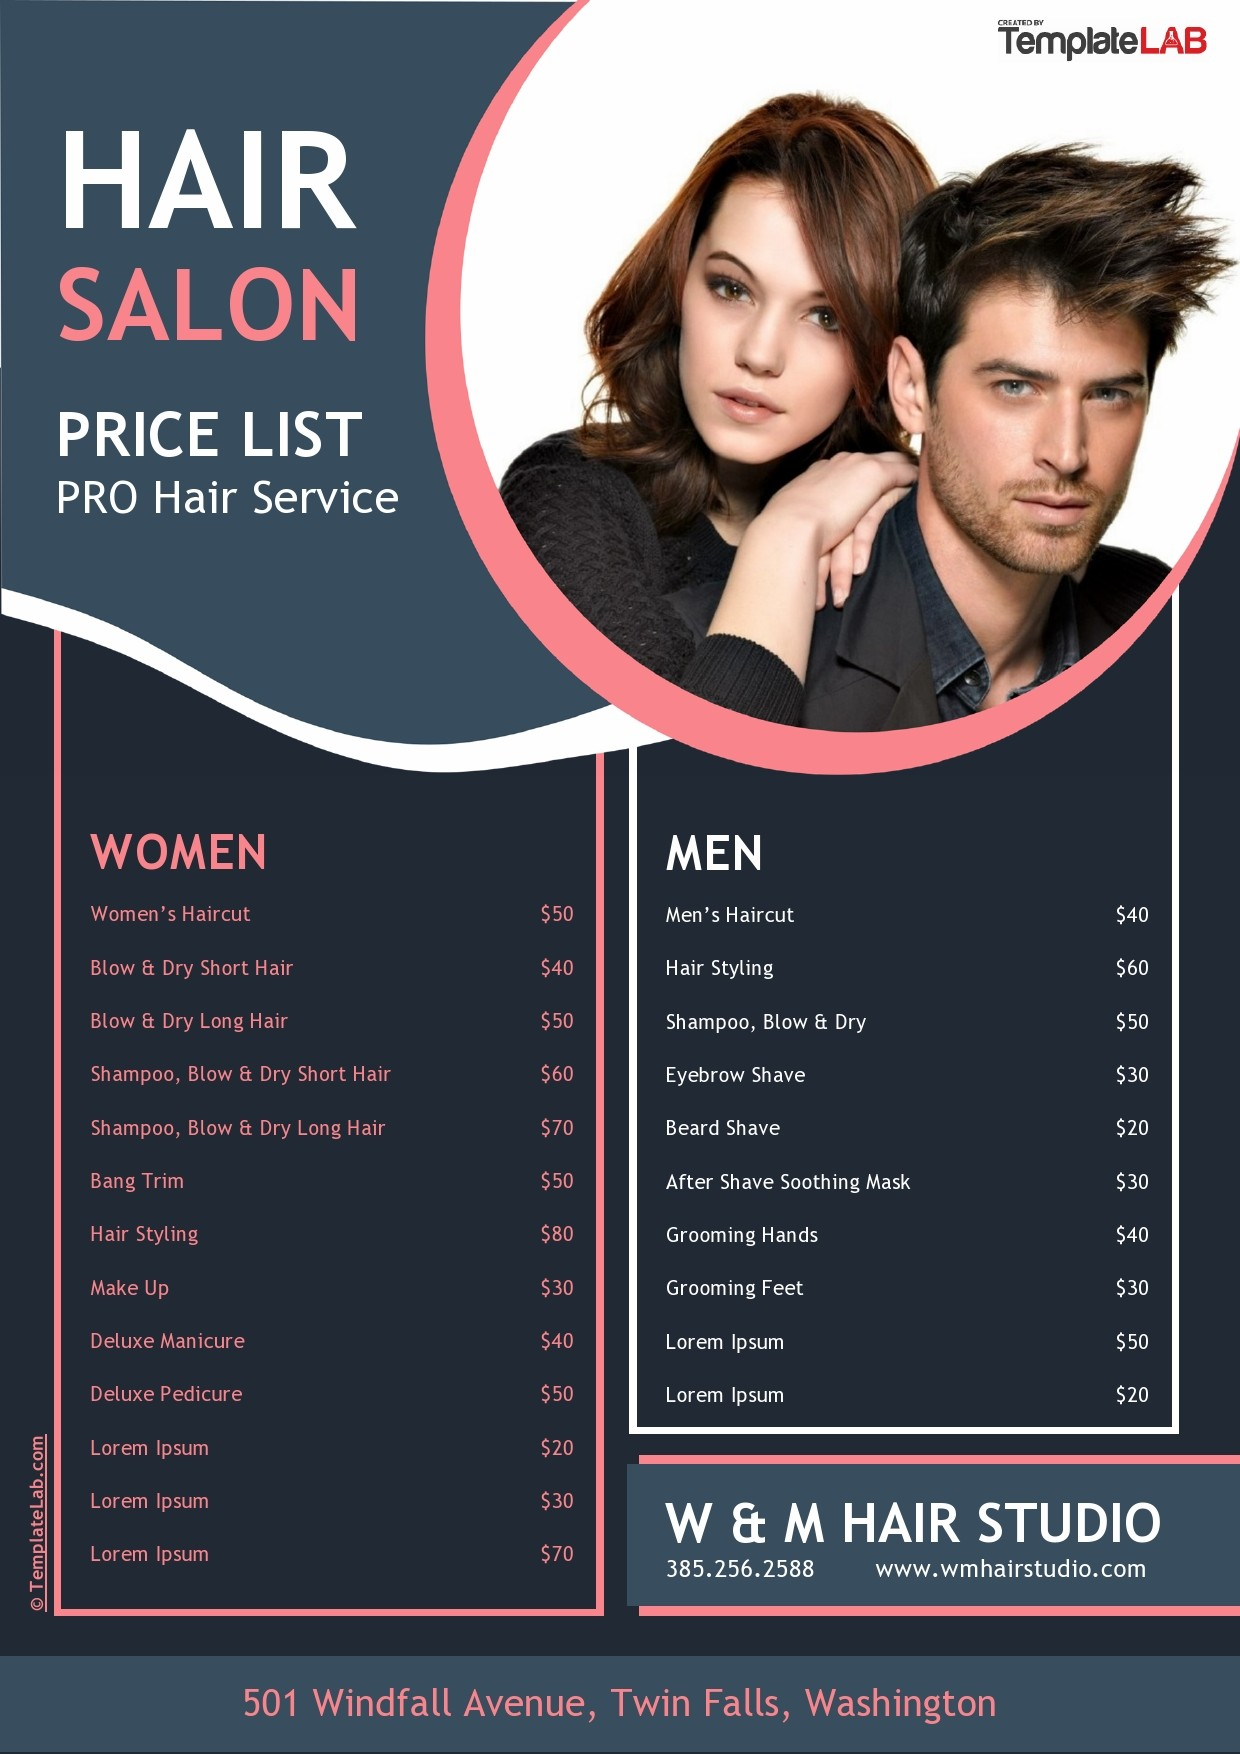 Salon Price List Template Free from templatelab.com